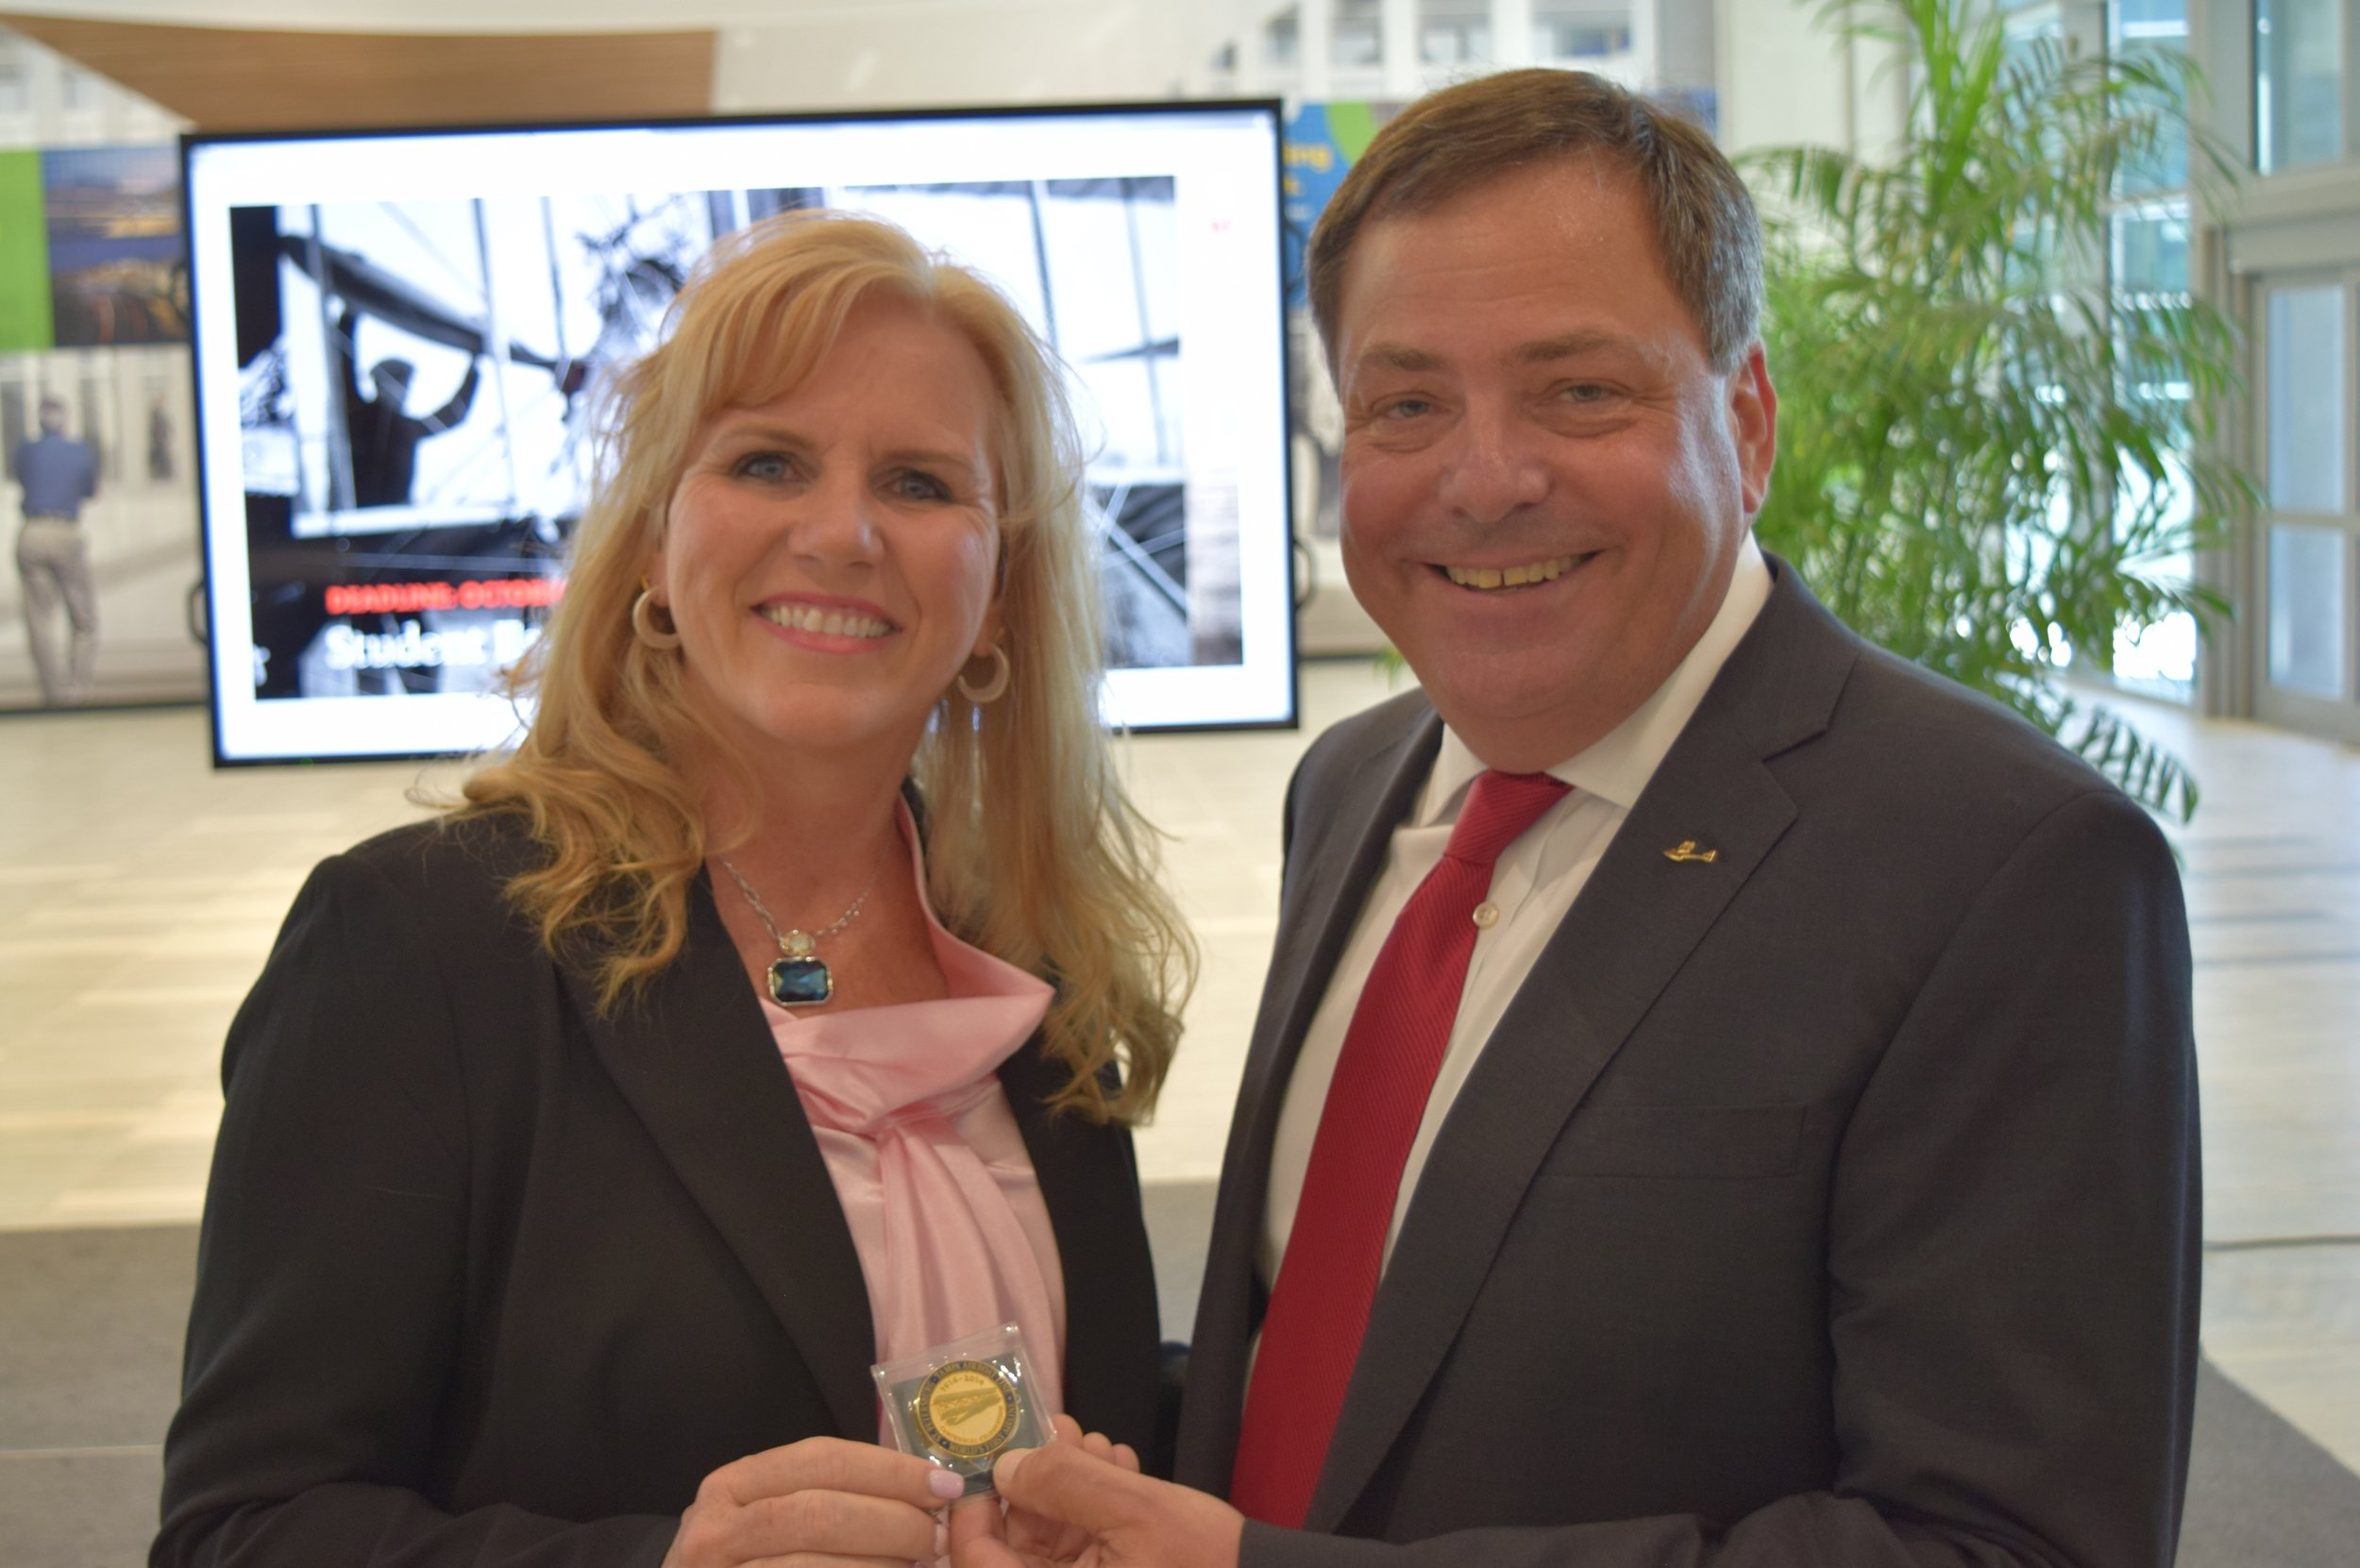 Paul Piro presenting Tony Jannus Centennial Coin to Jeannie Driscoll after Press Conference, 9 May '17.JPG